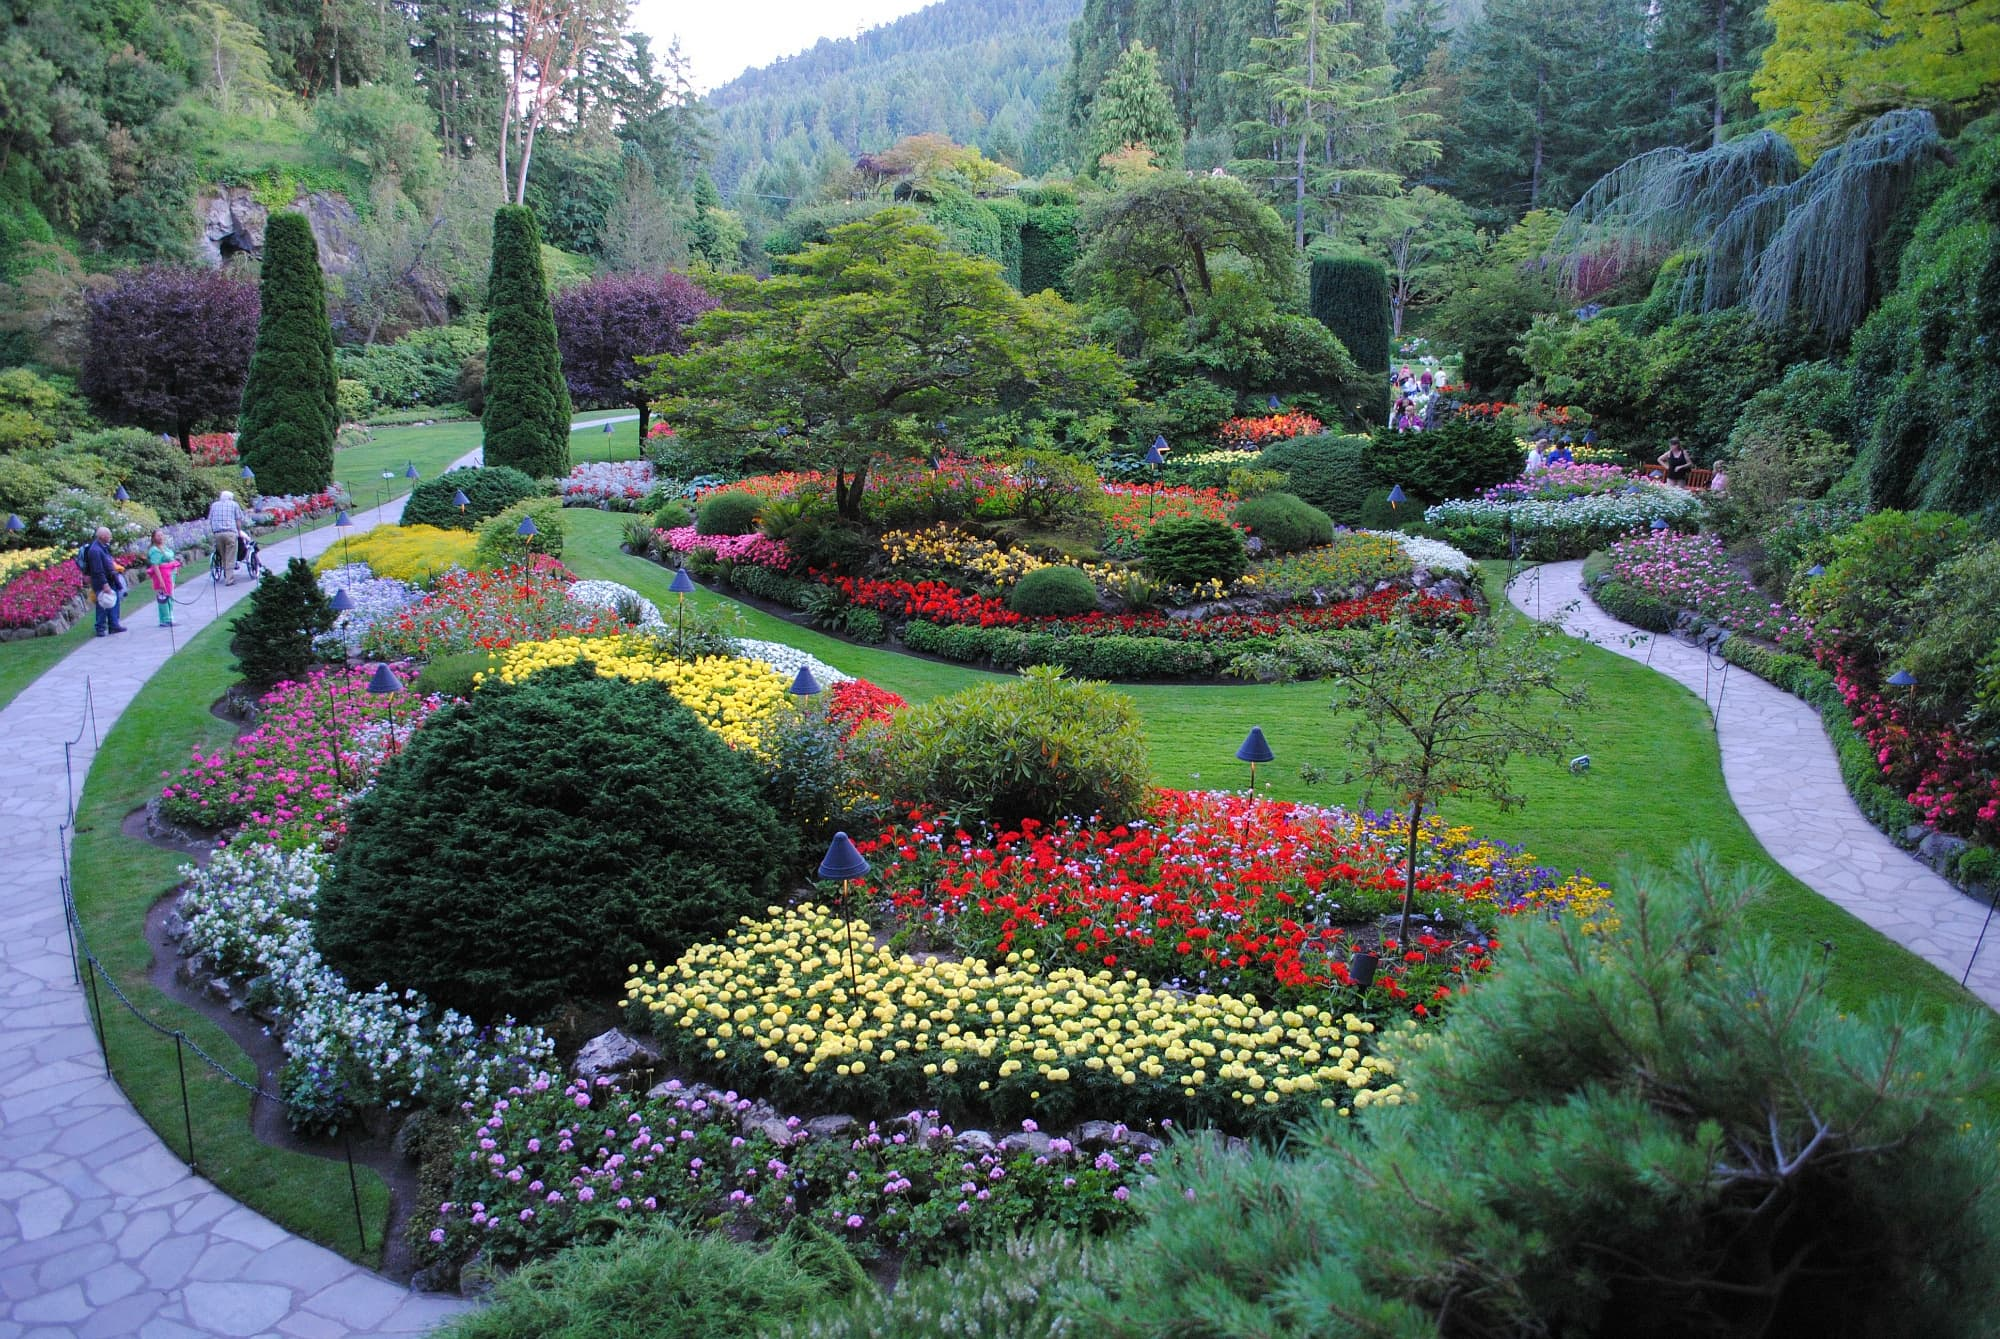 Butchart Gardens is a bucket list item for any botanical garden lover